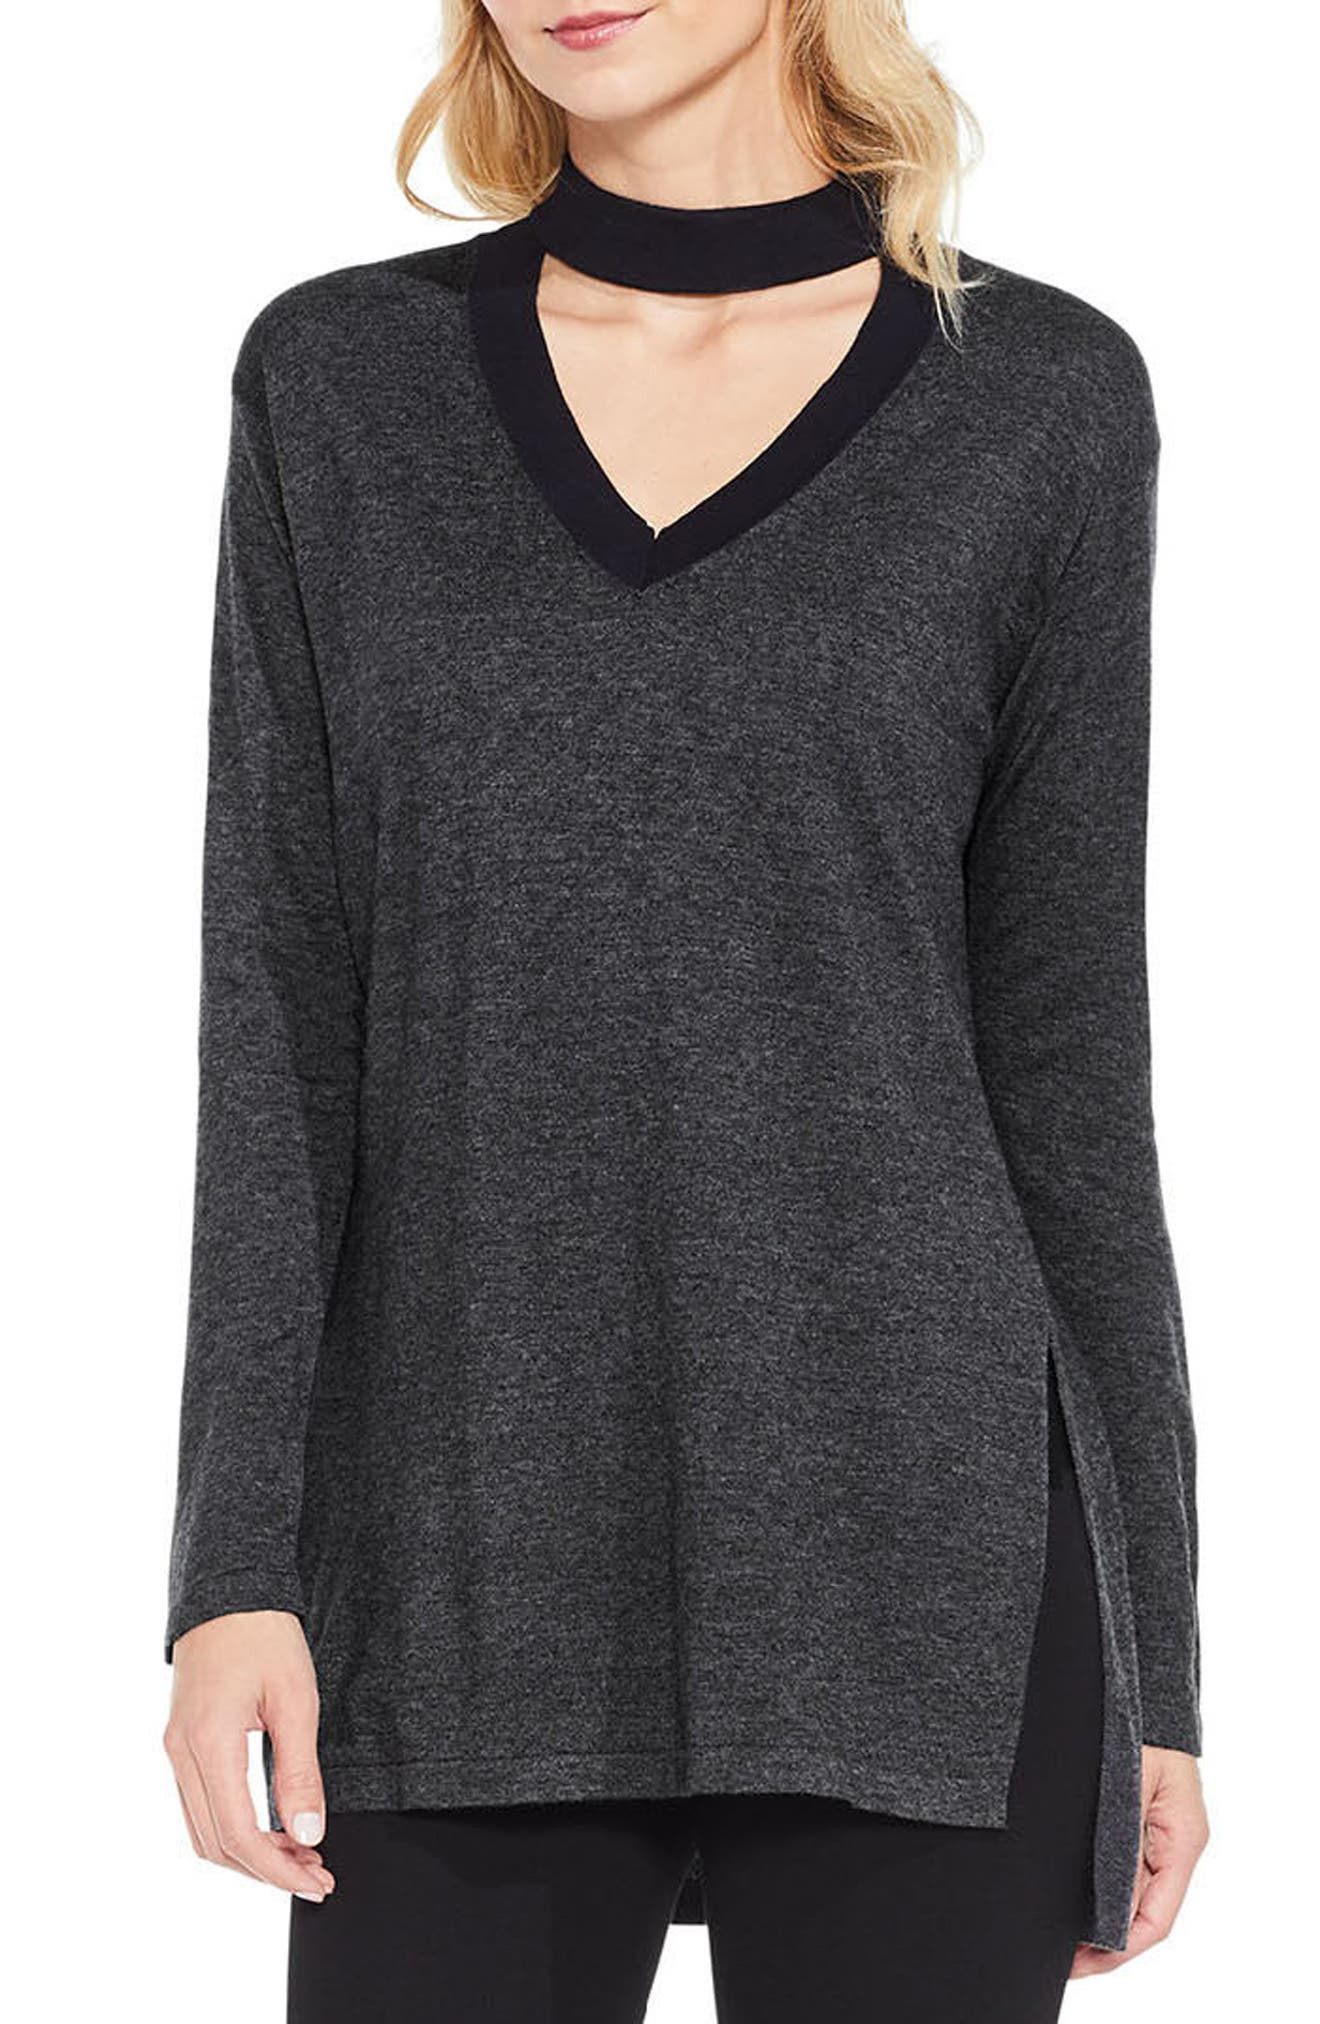 Alternate Image 1 Selected - Vince Camuto Choker V-Neck Sweater